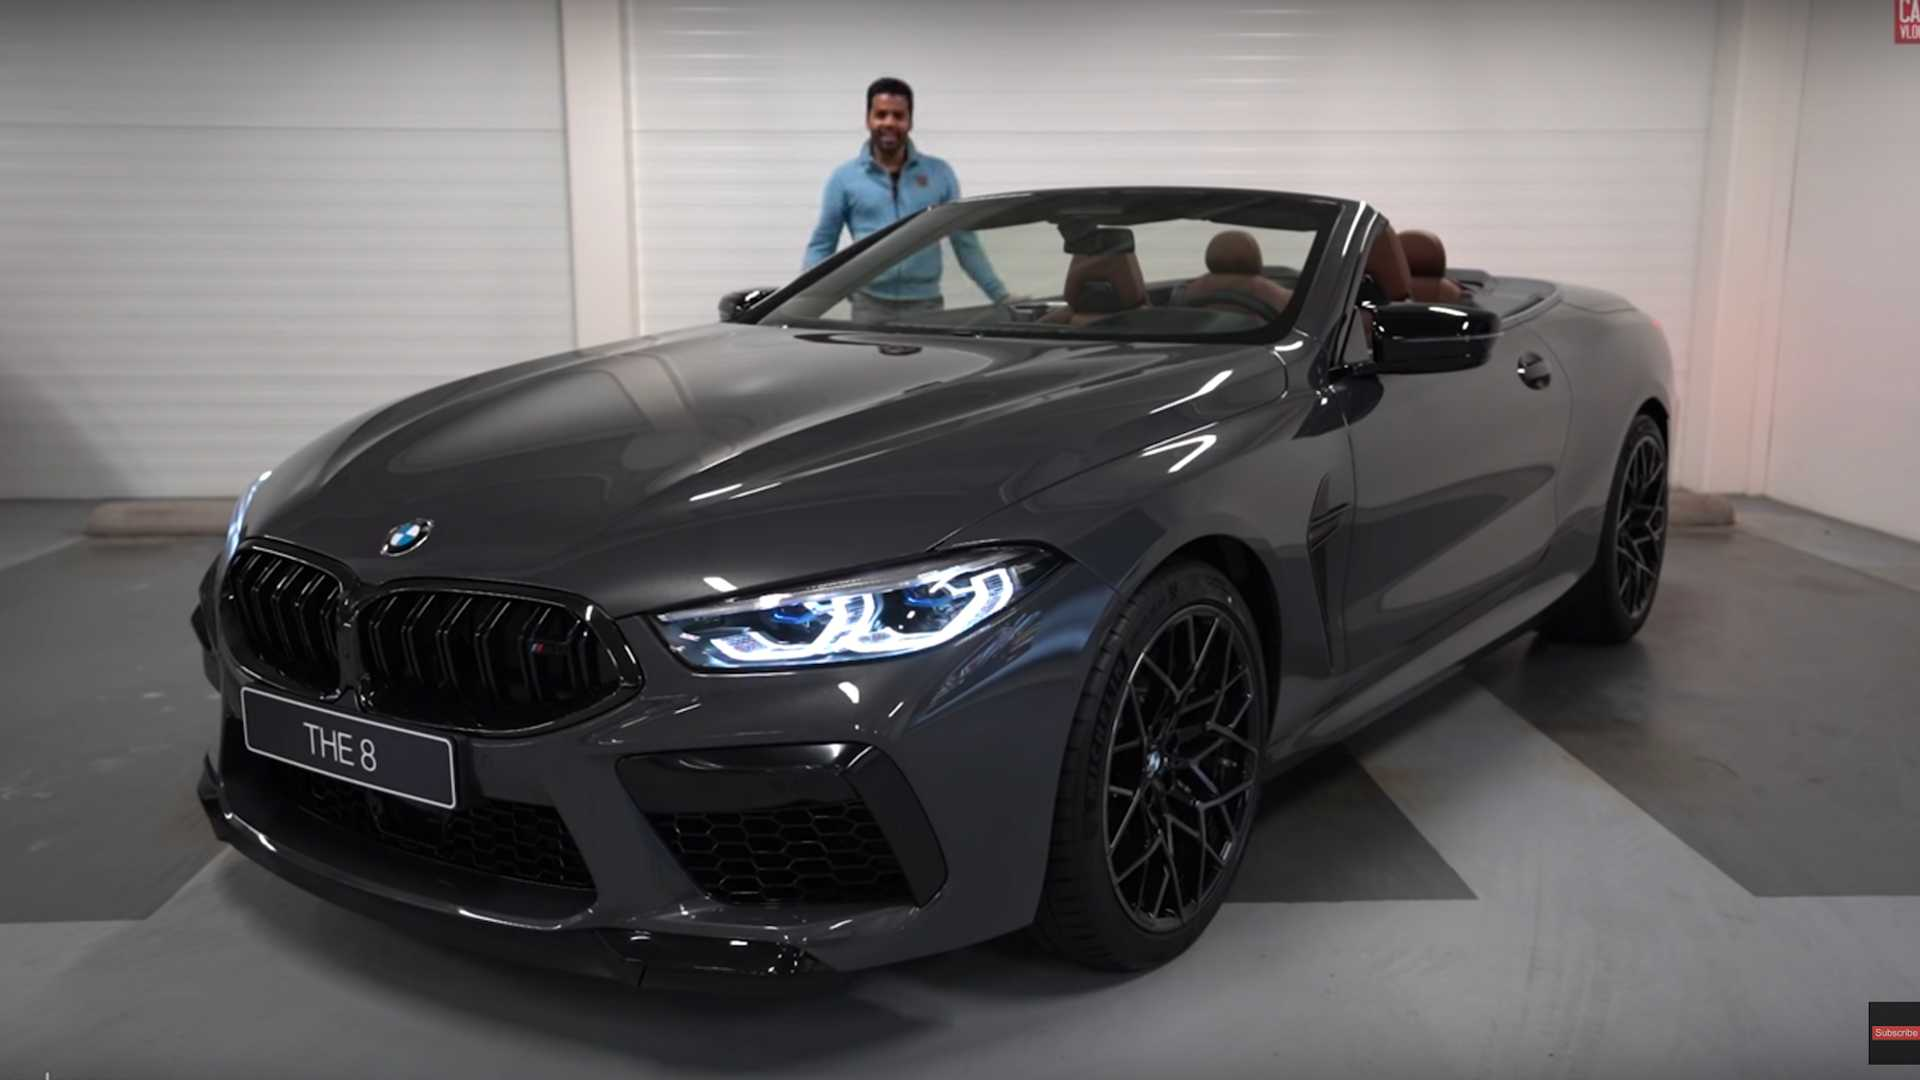 This Bmw M8 Competition Convertible Costs 282 600